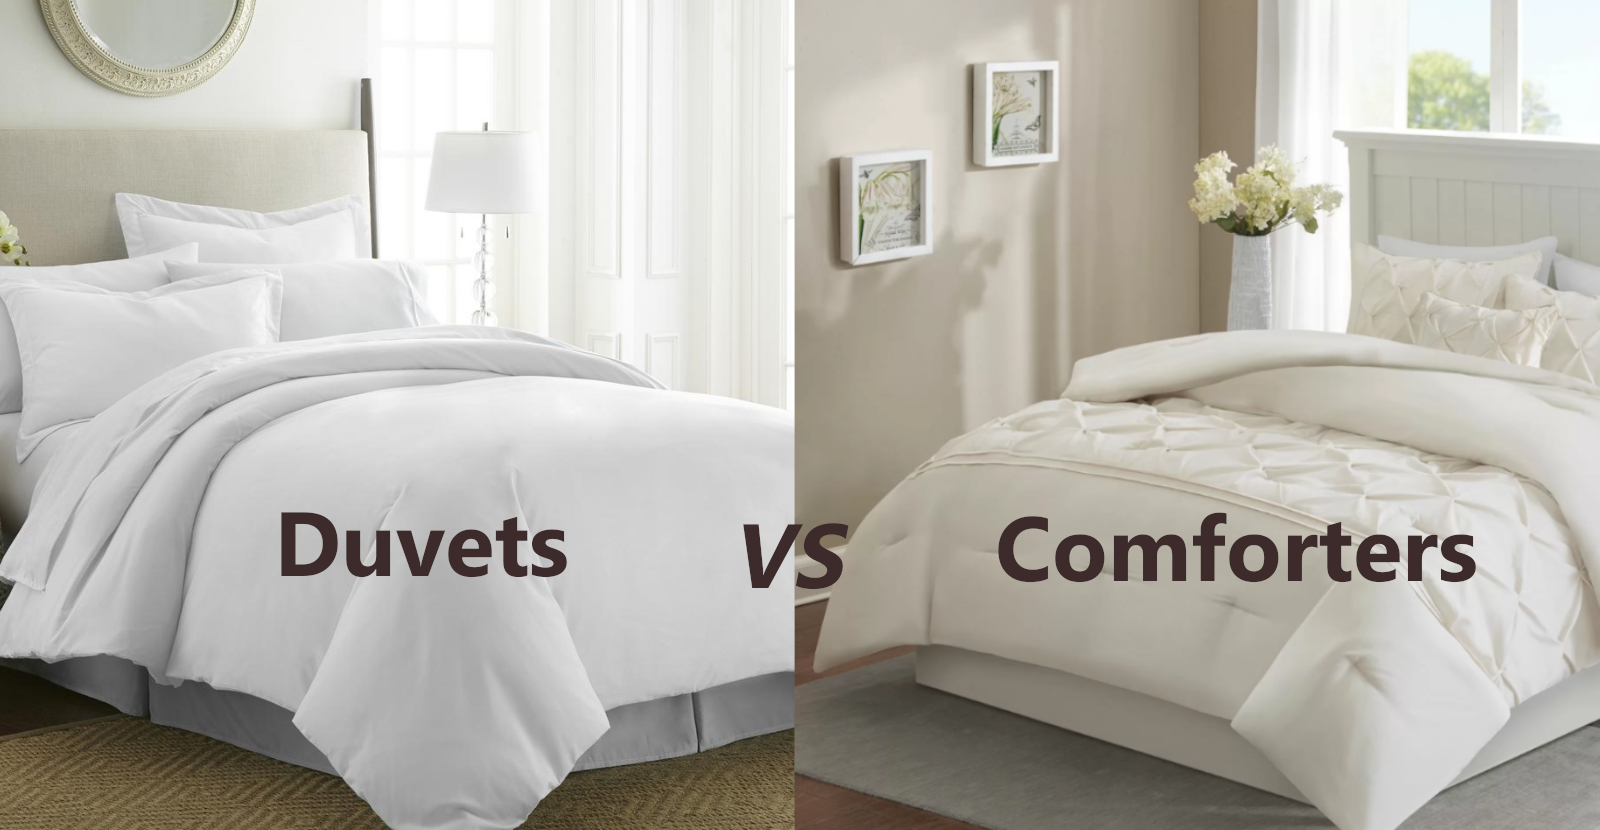 what is the difference between duvets and comforters?